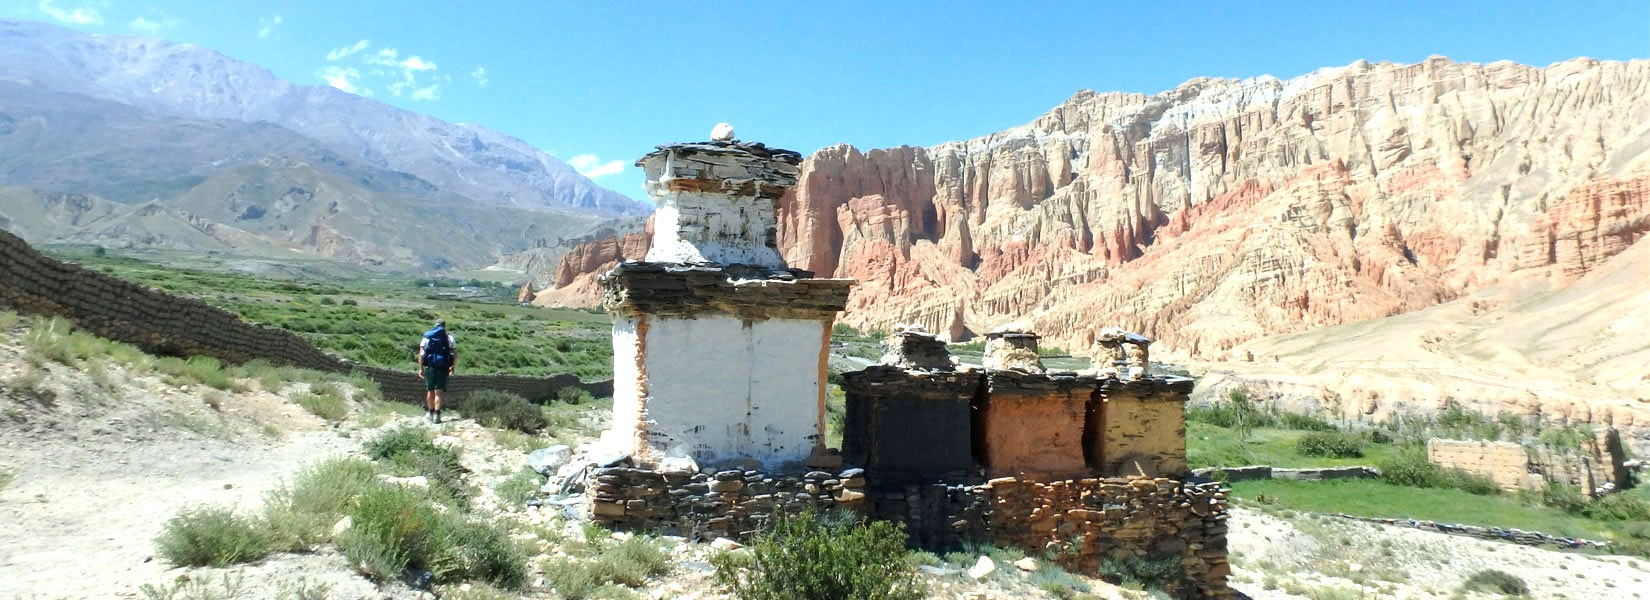 Glimpse of Upper Mustang